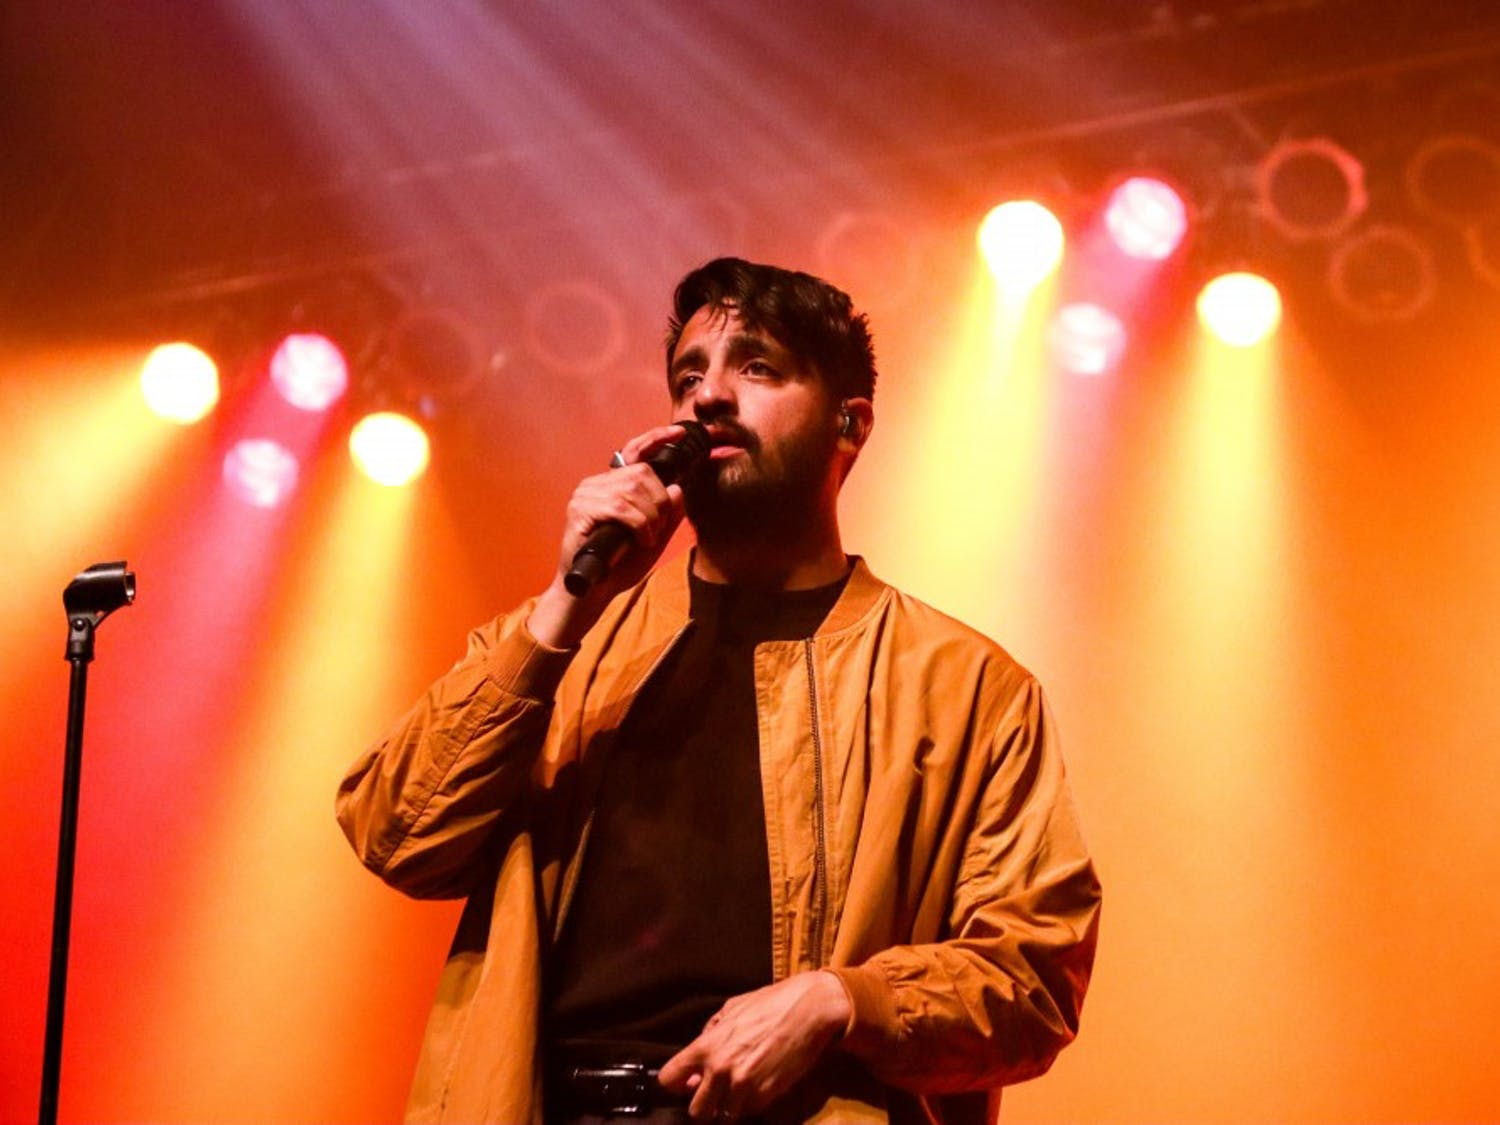 Sameer Gadhia, lead singer of Young the Giant, performs at the Center for the Arts Saturday.